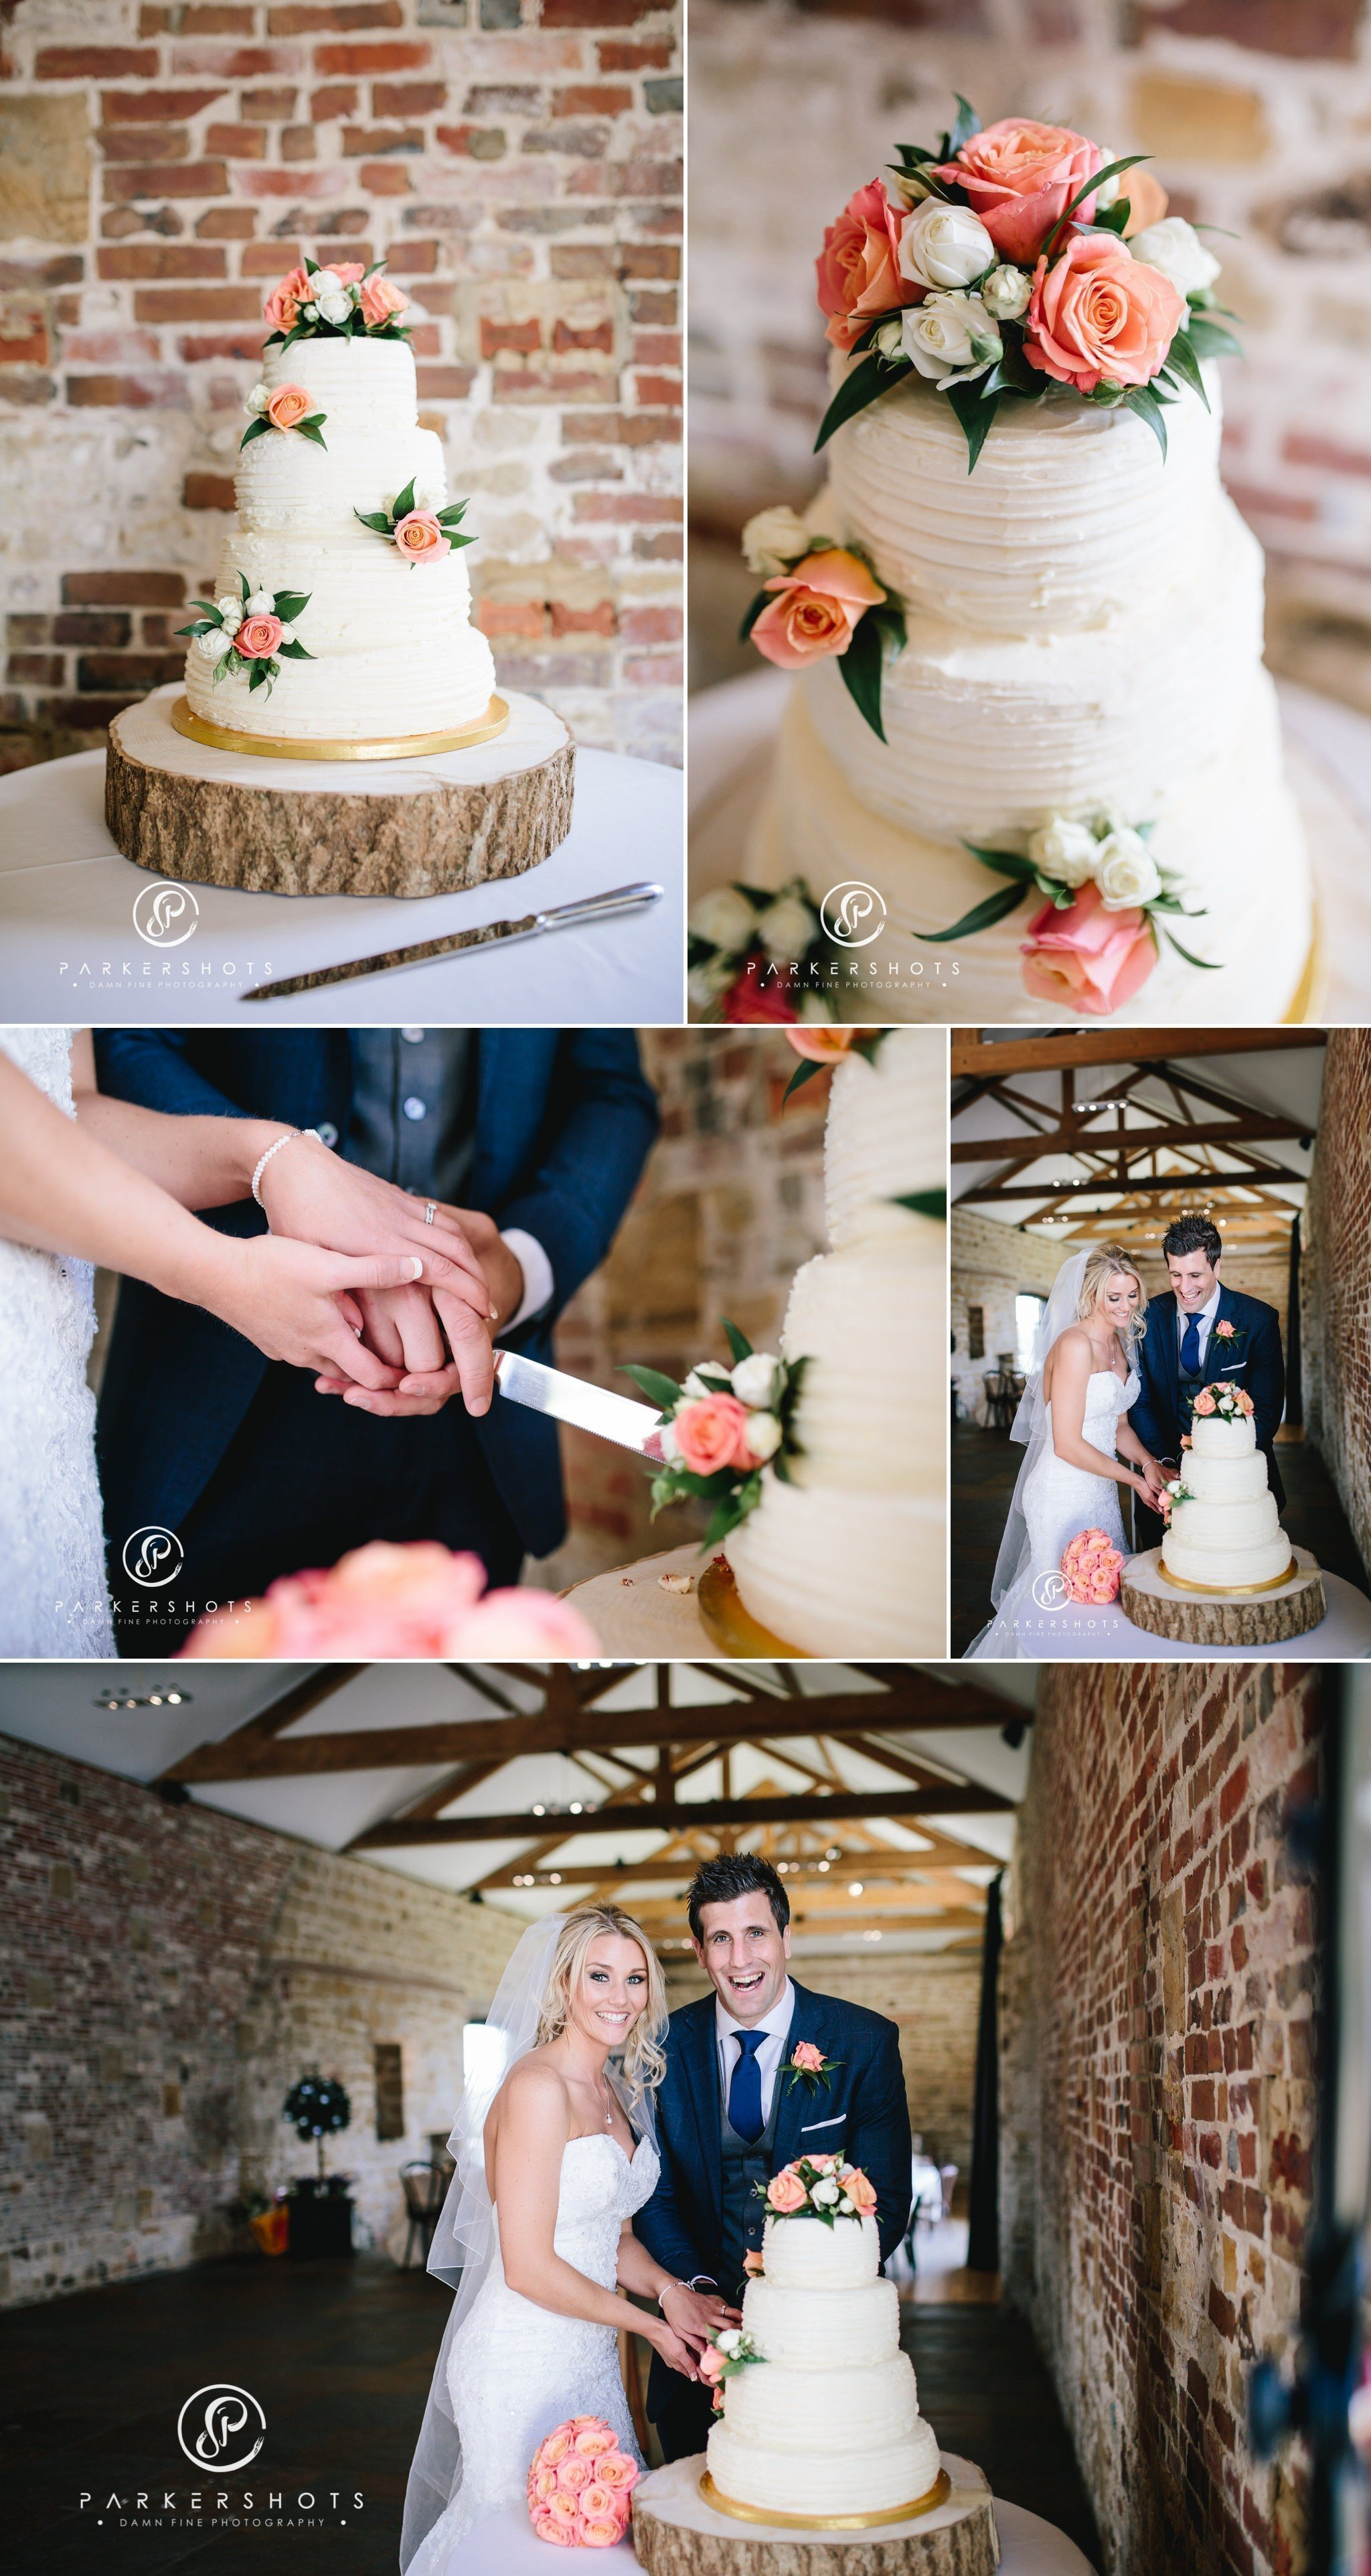 Wedding photography of cake